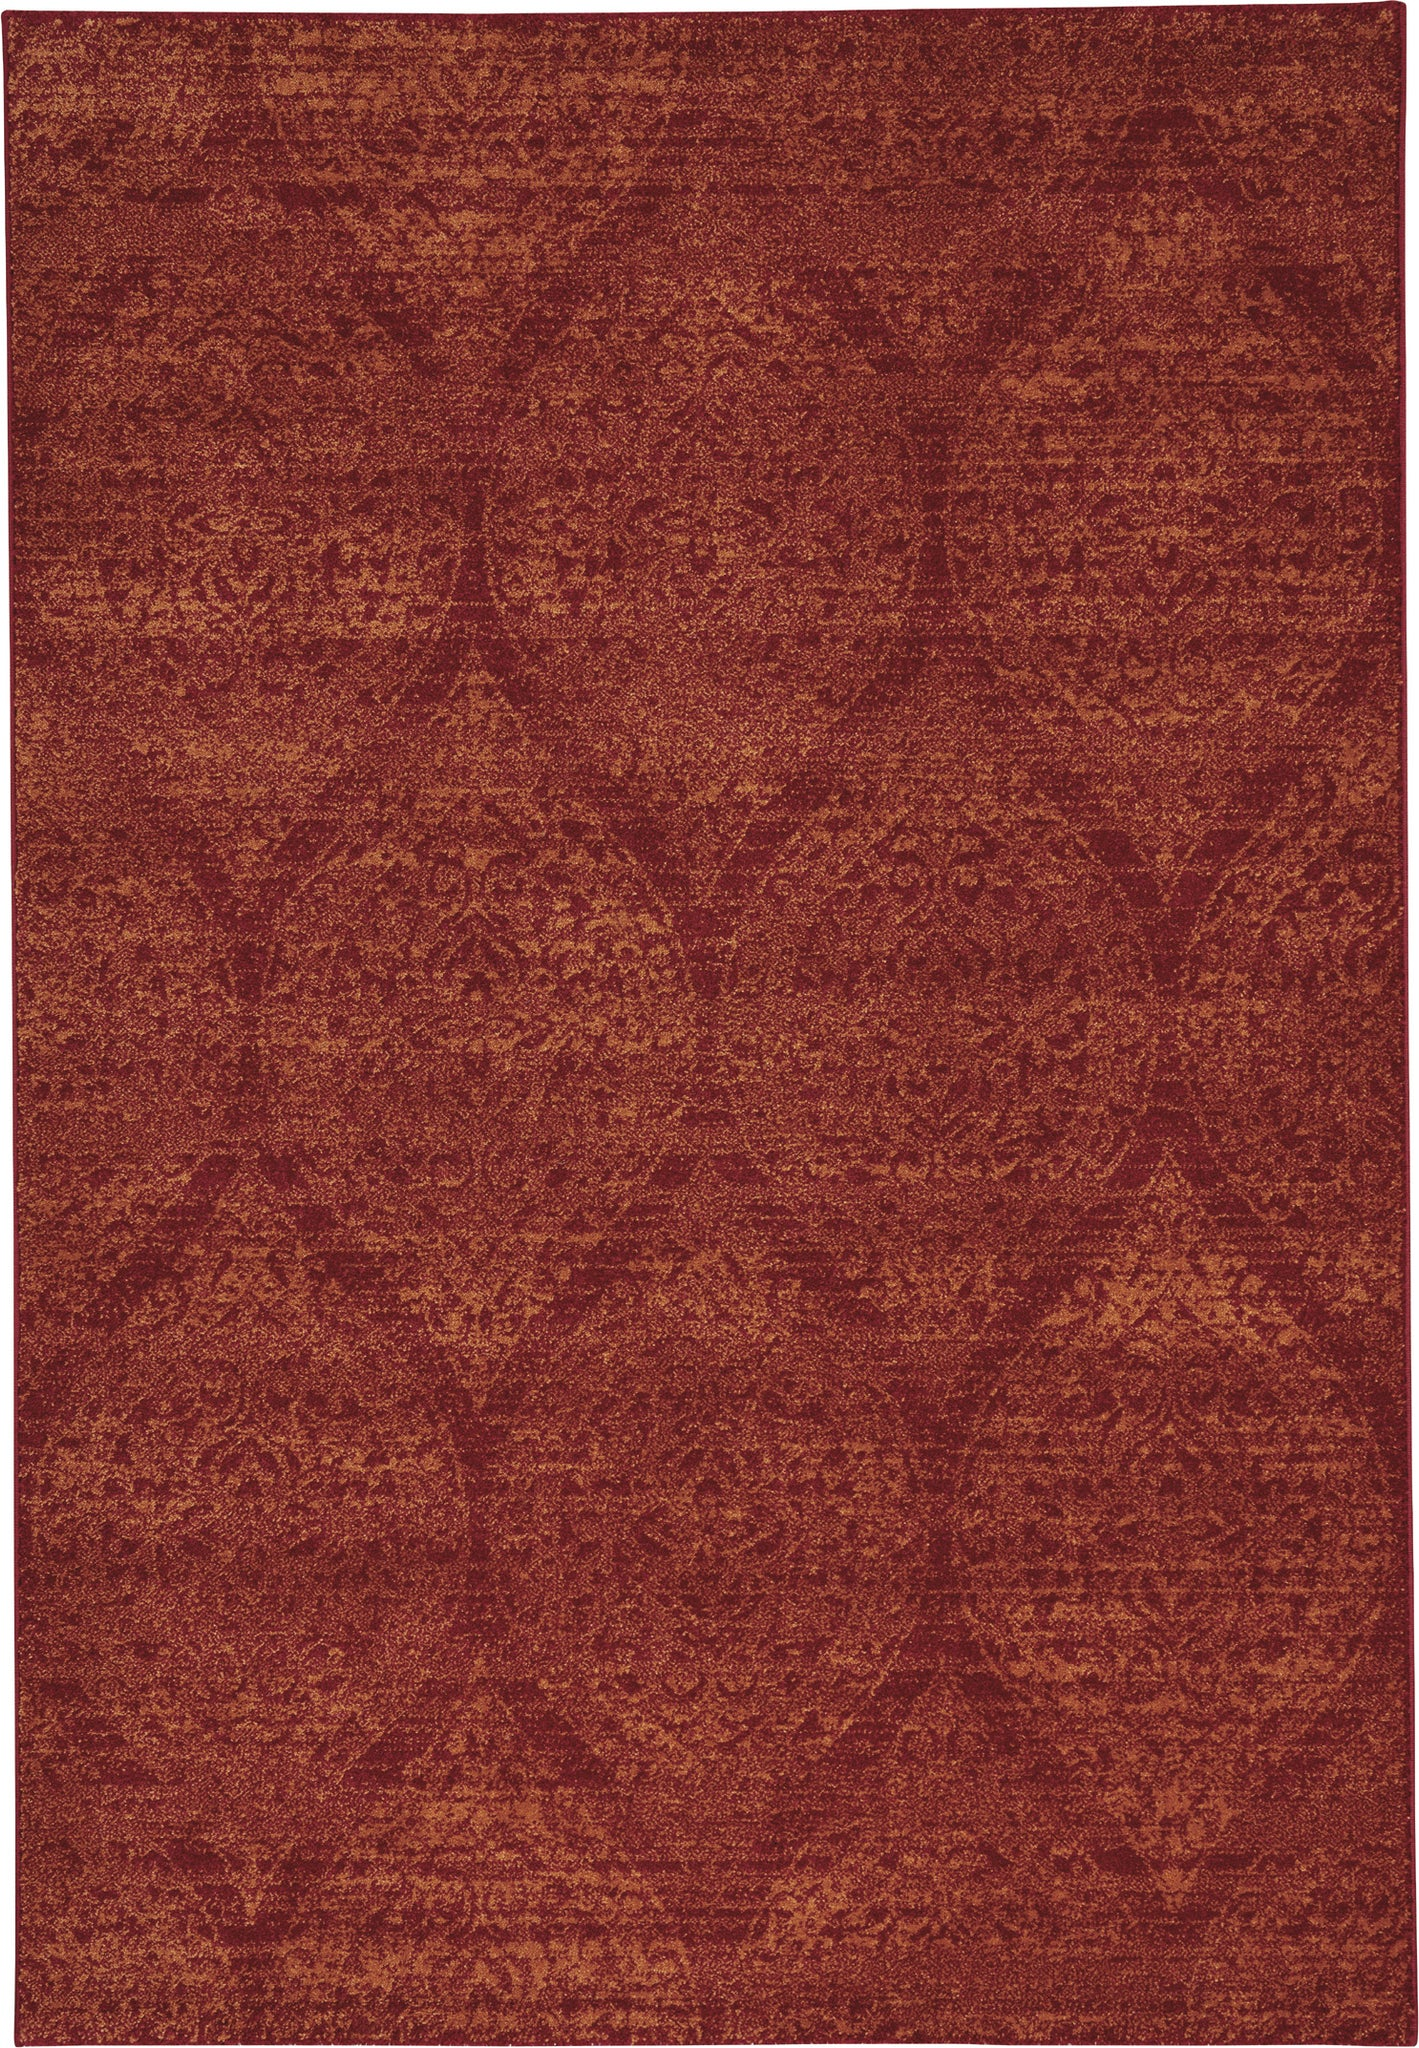 Capel Channel 4742 Flame Area Rug main image